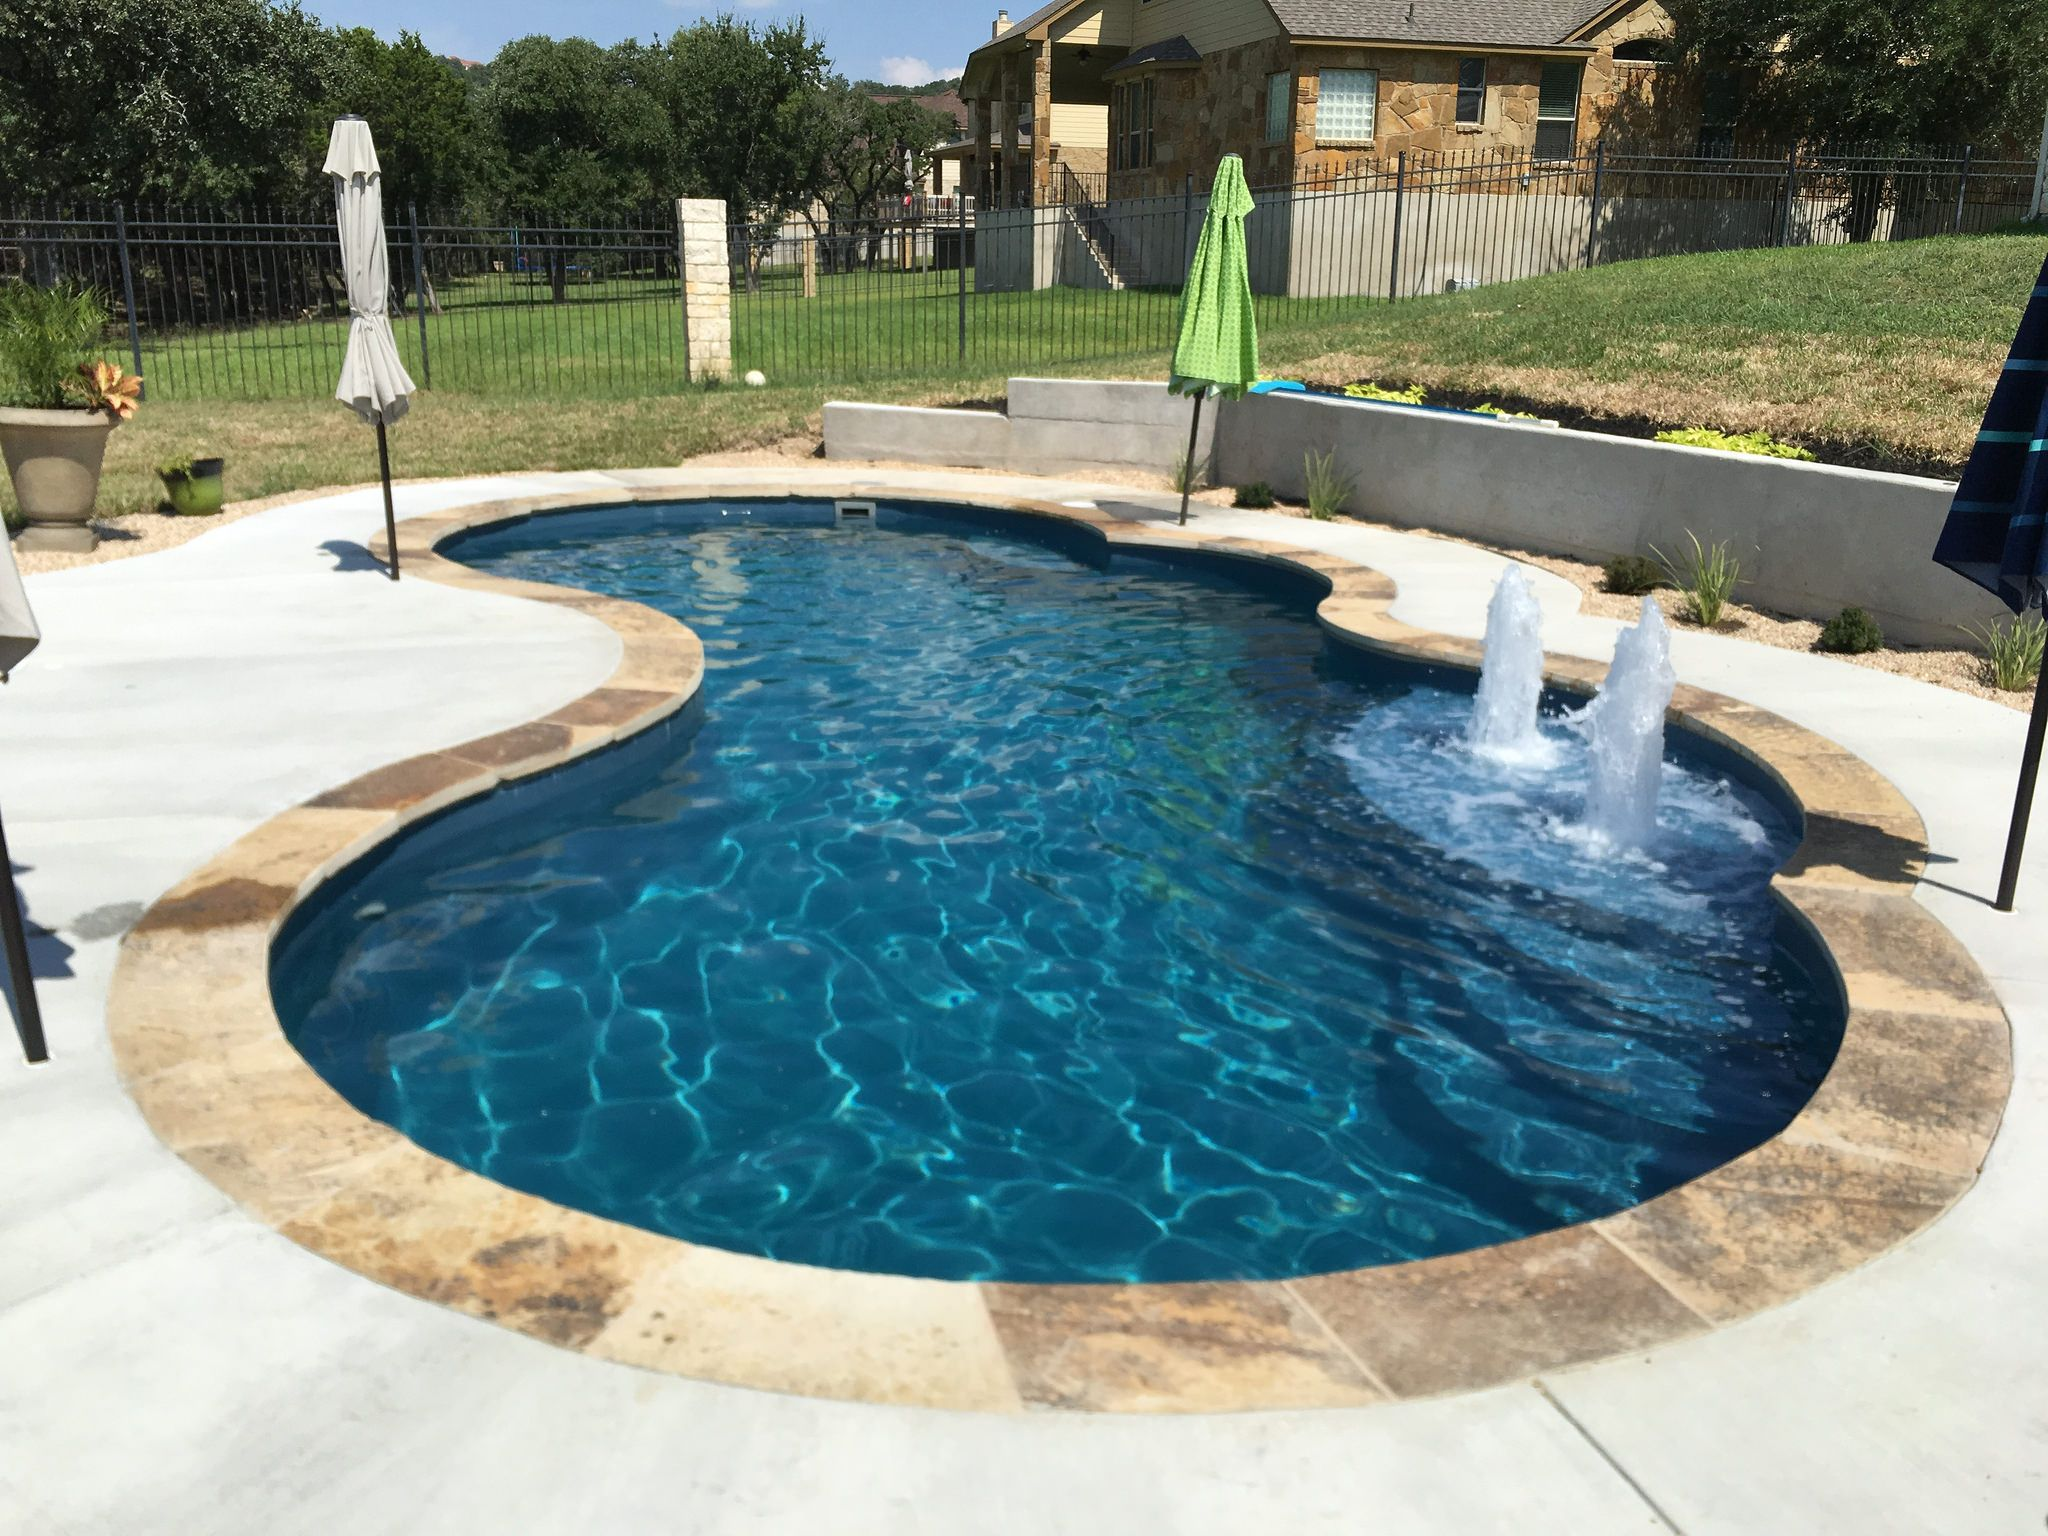 This 16 39 x 32 39 gemini shaped fiberglass inground pool for In ground pool coping ideas